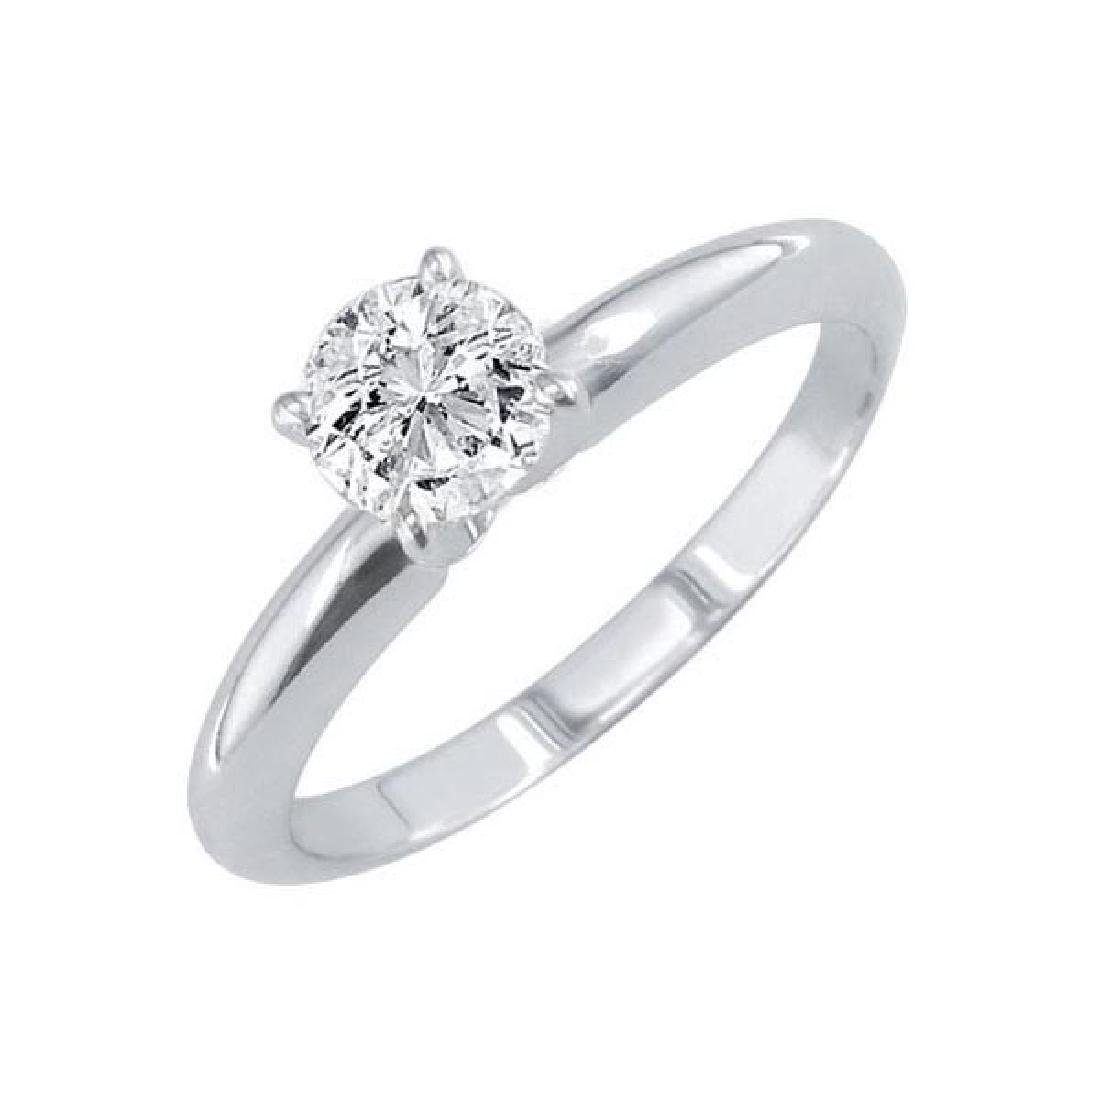 Certified 0.74 CTW Round Diamond Solitaire 14k Ring H/S